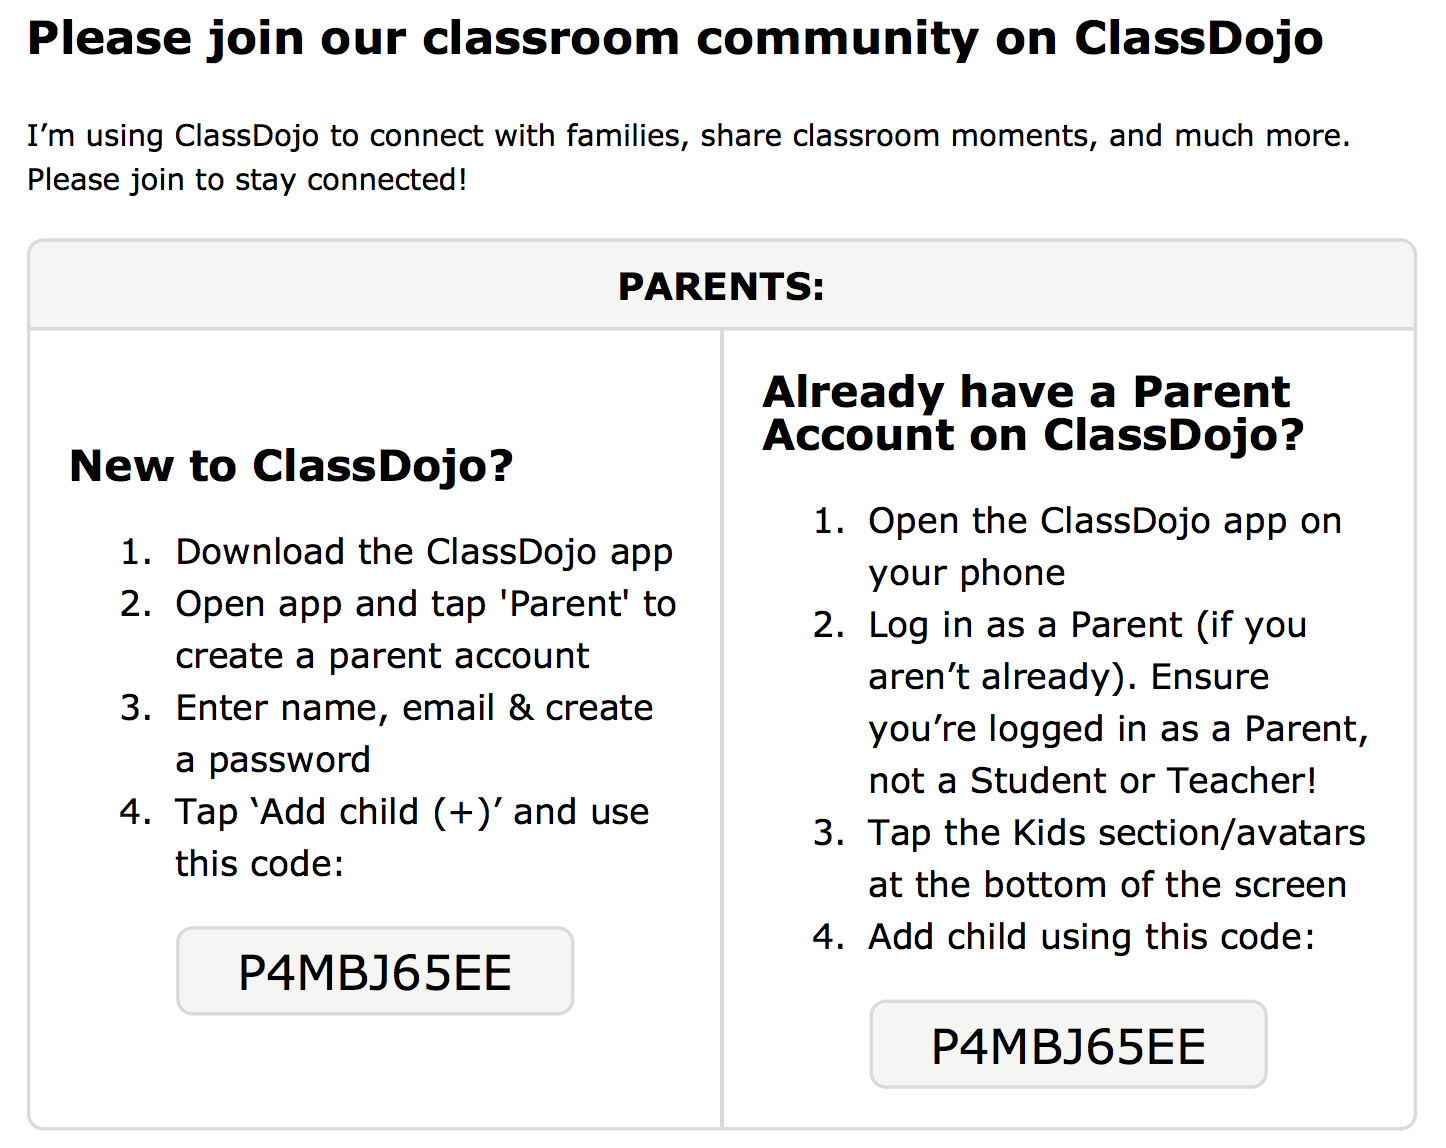 Please join our classdojo team, if you need assistance I can help, I just need your phone number or email address.